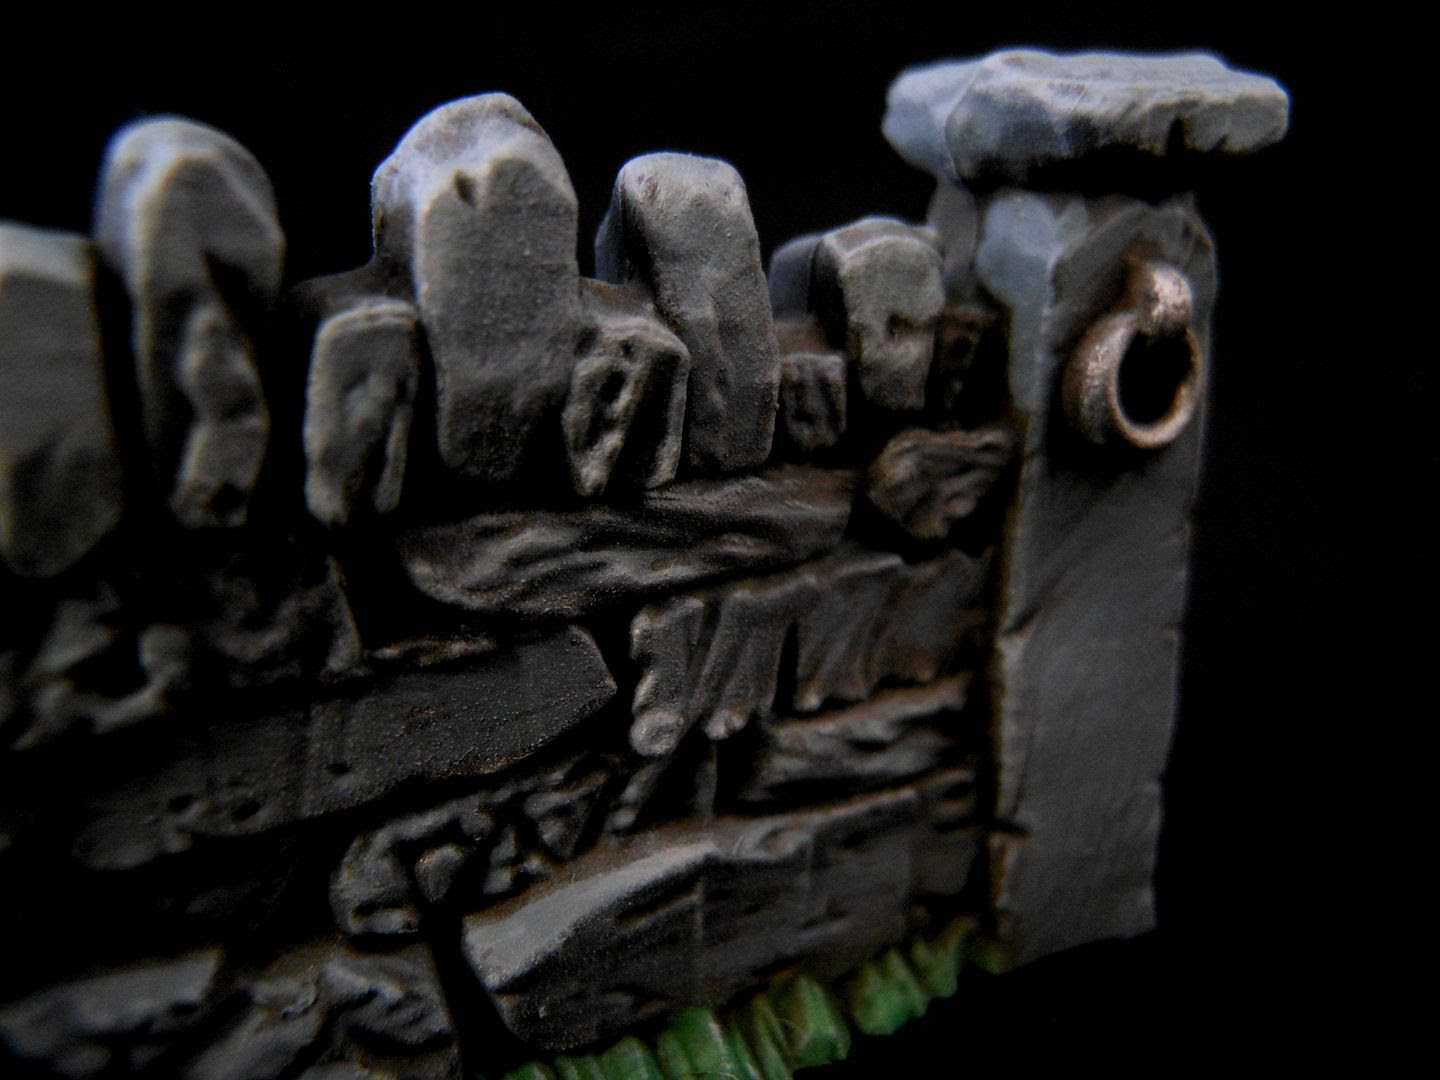 Close up photograph showing the detail on a painted Games Workshop wall.